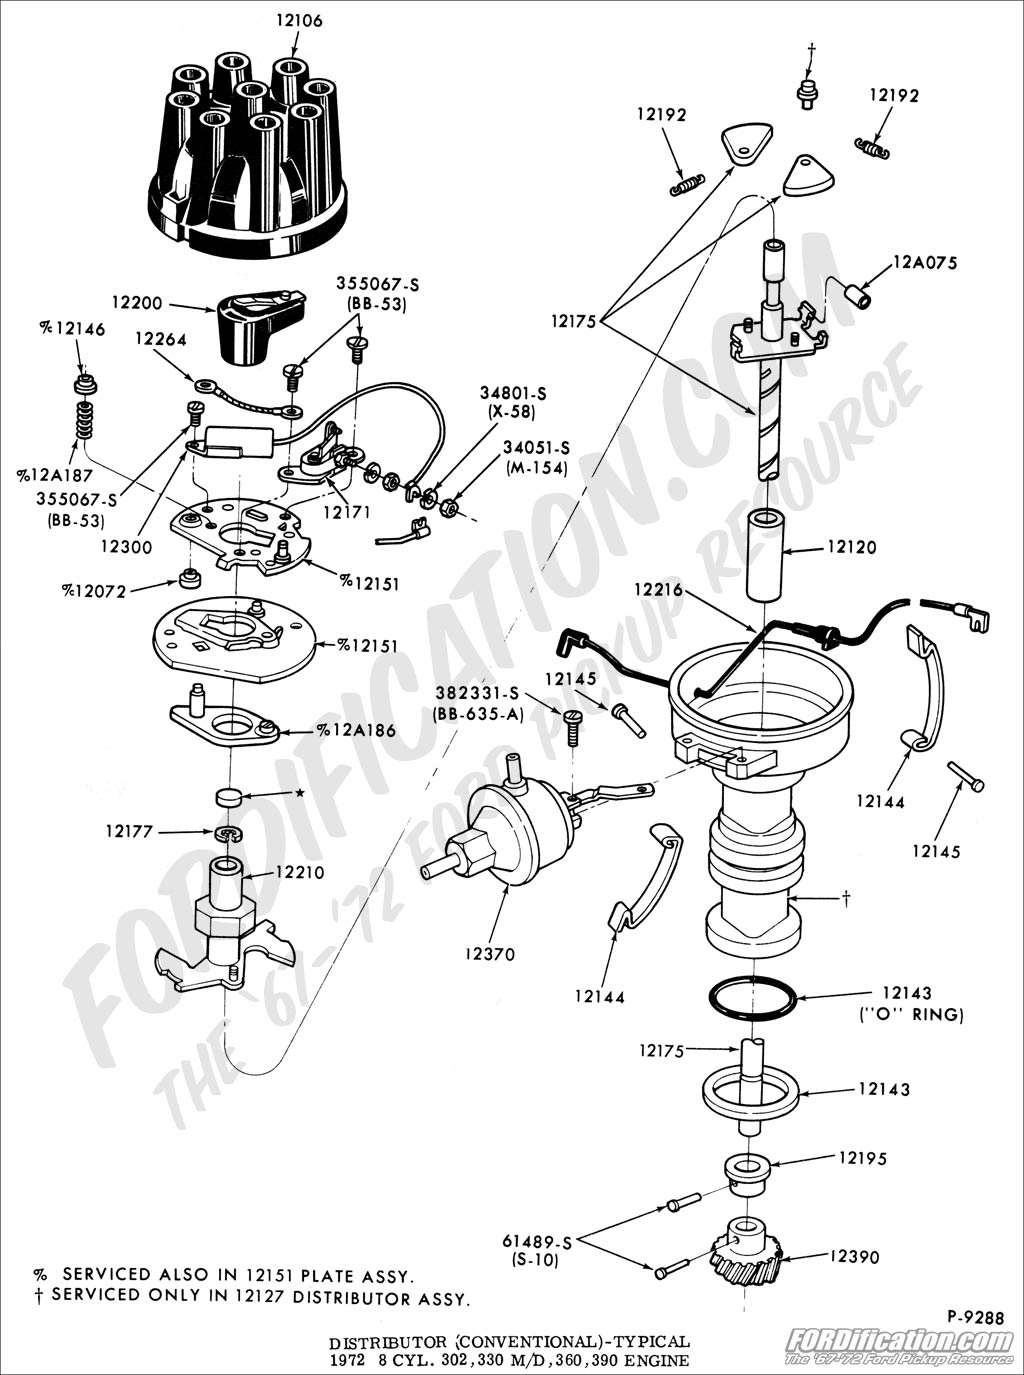 1966 Ford F100 Wiring Harness Diagram Trusted Truck For Alternator Technical Drawings And Schematics Section I